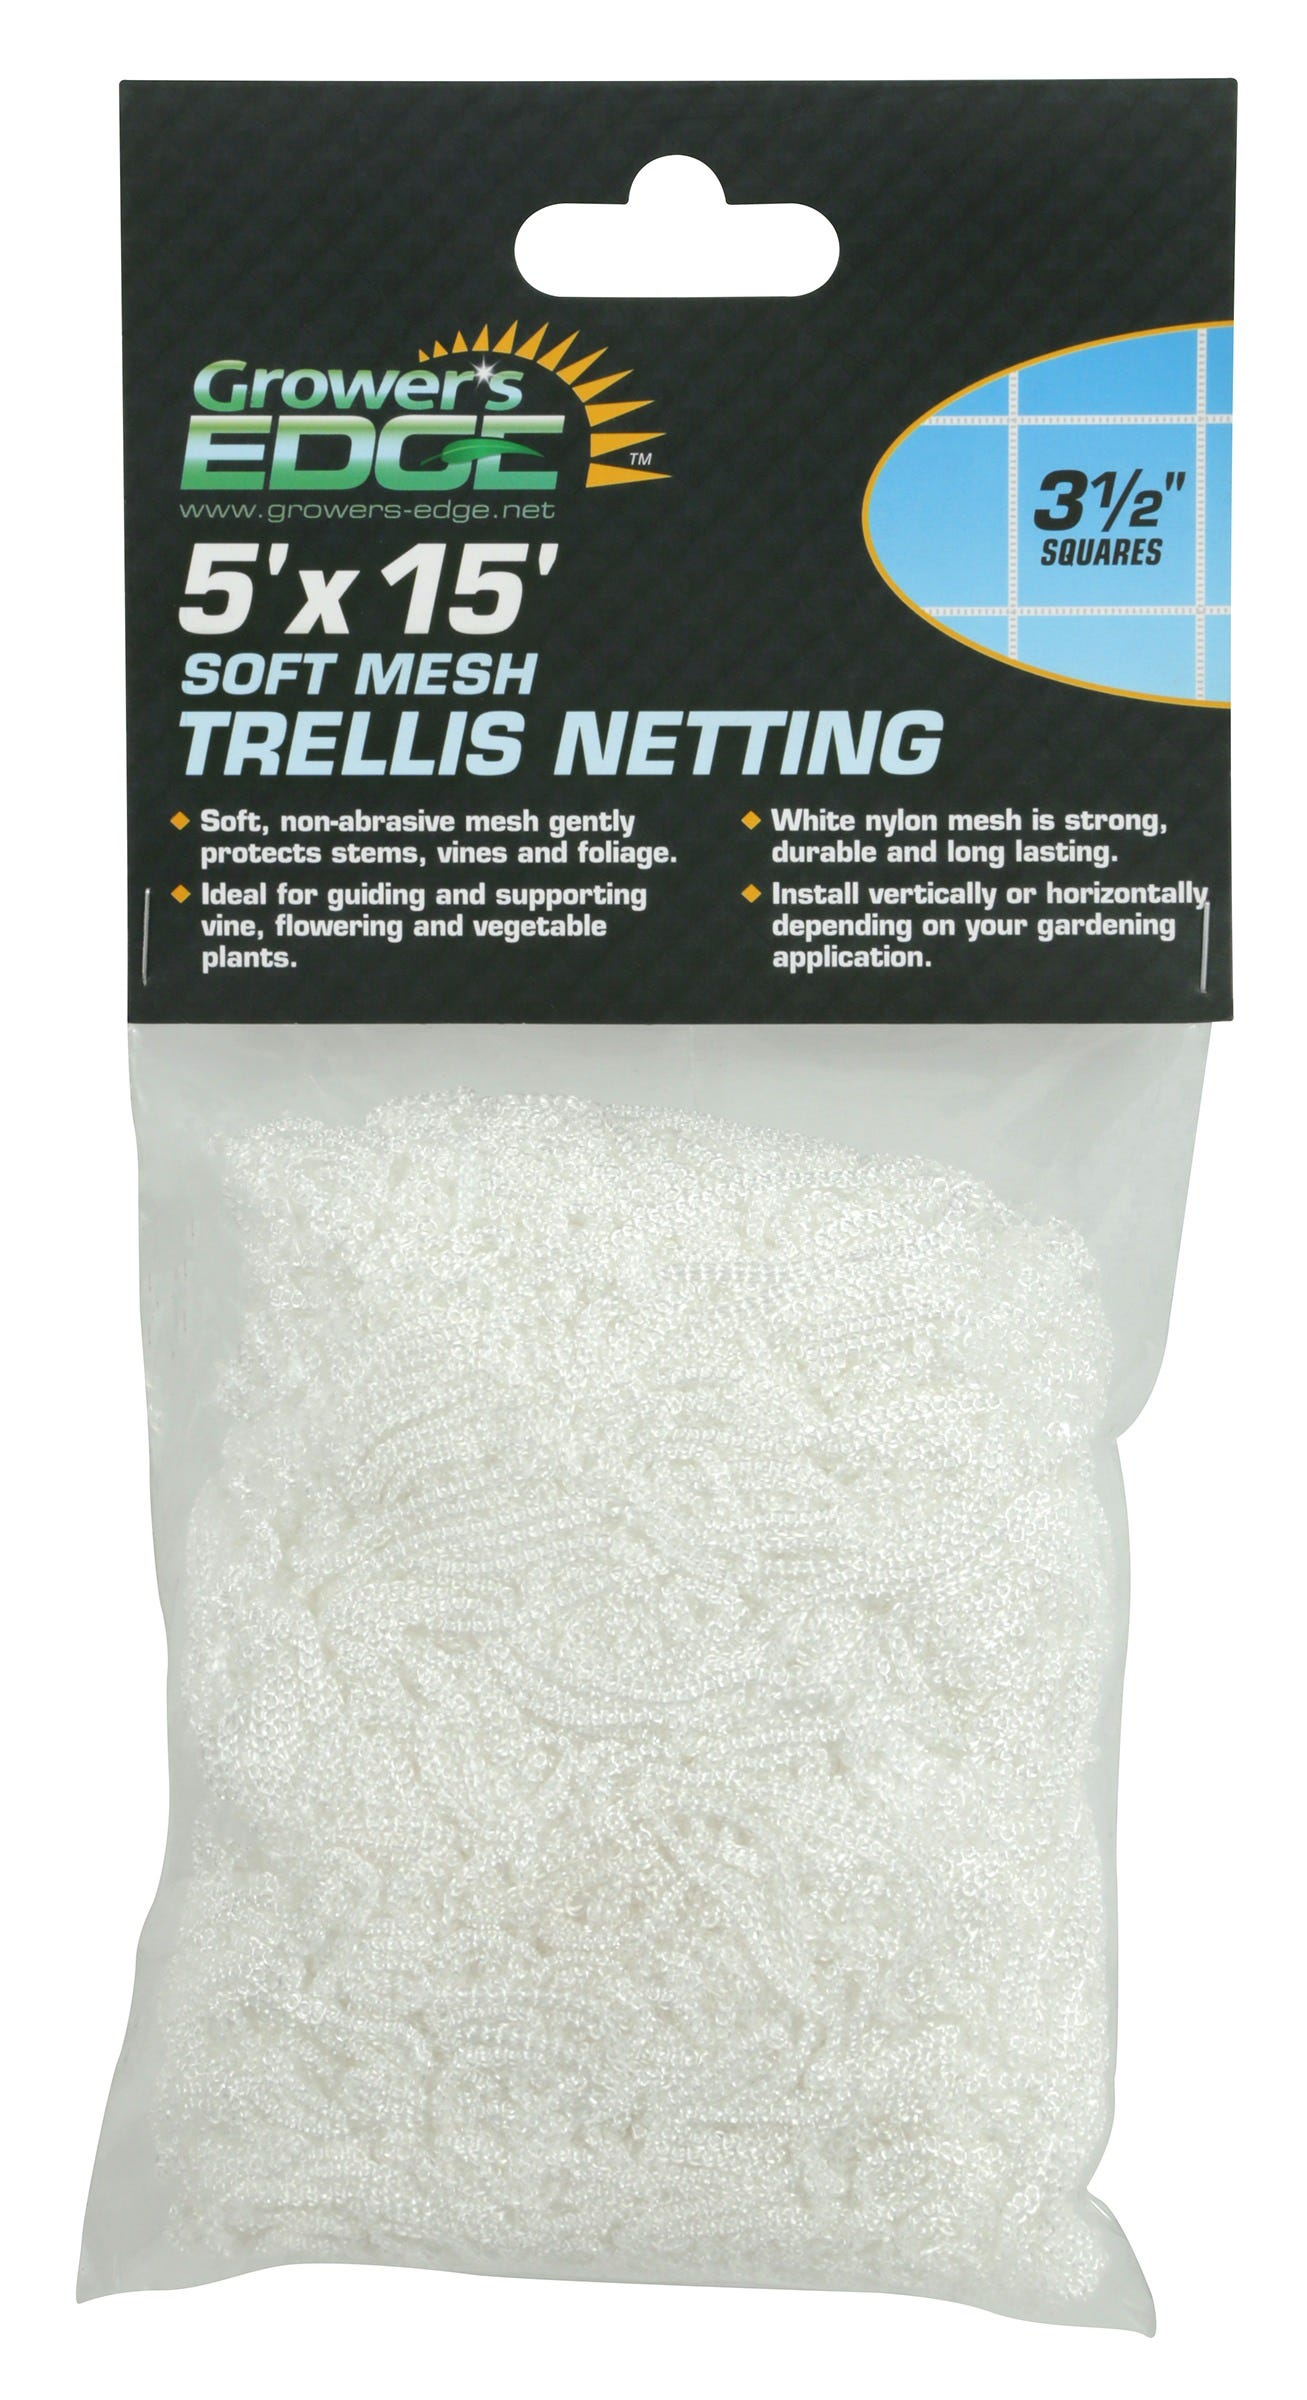 Grower's Edge Soft Mesh Trellis Netting 5 ft x 15 ft w/ 3.5 in Squares